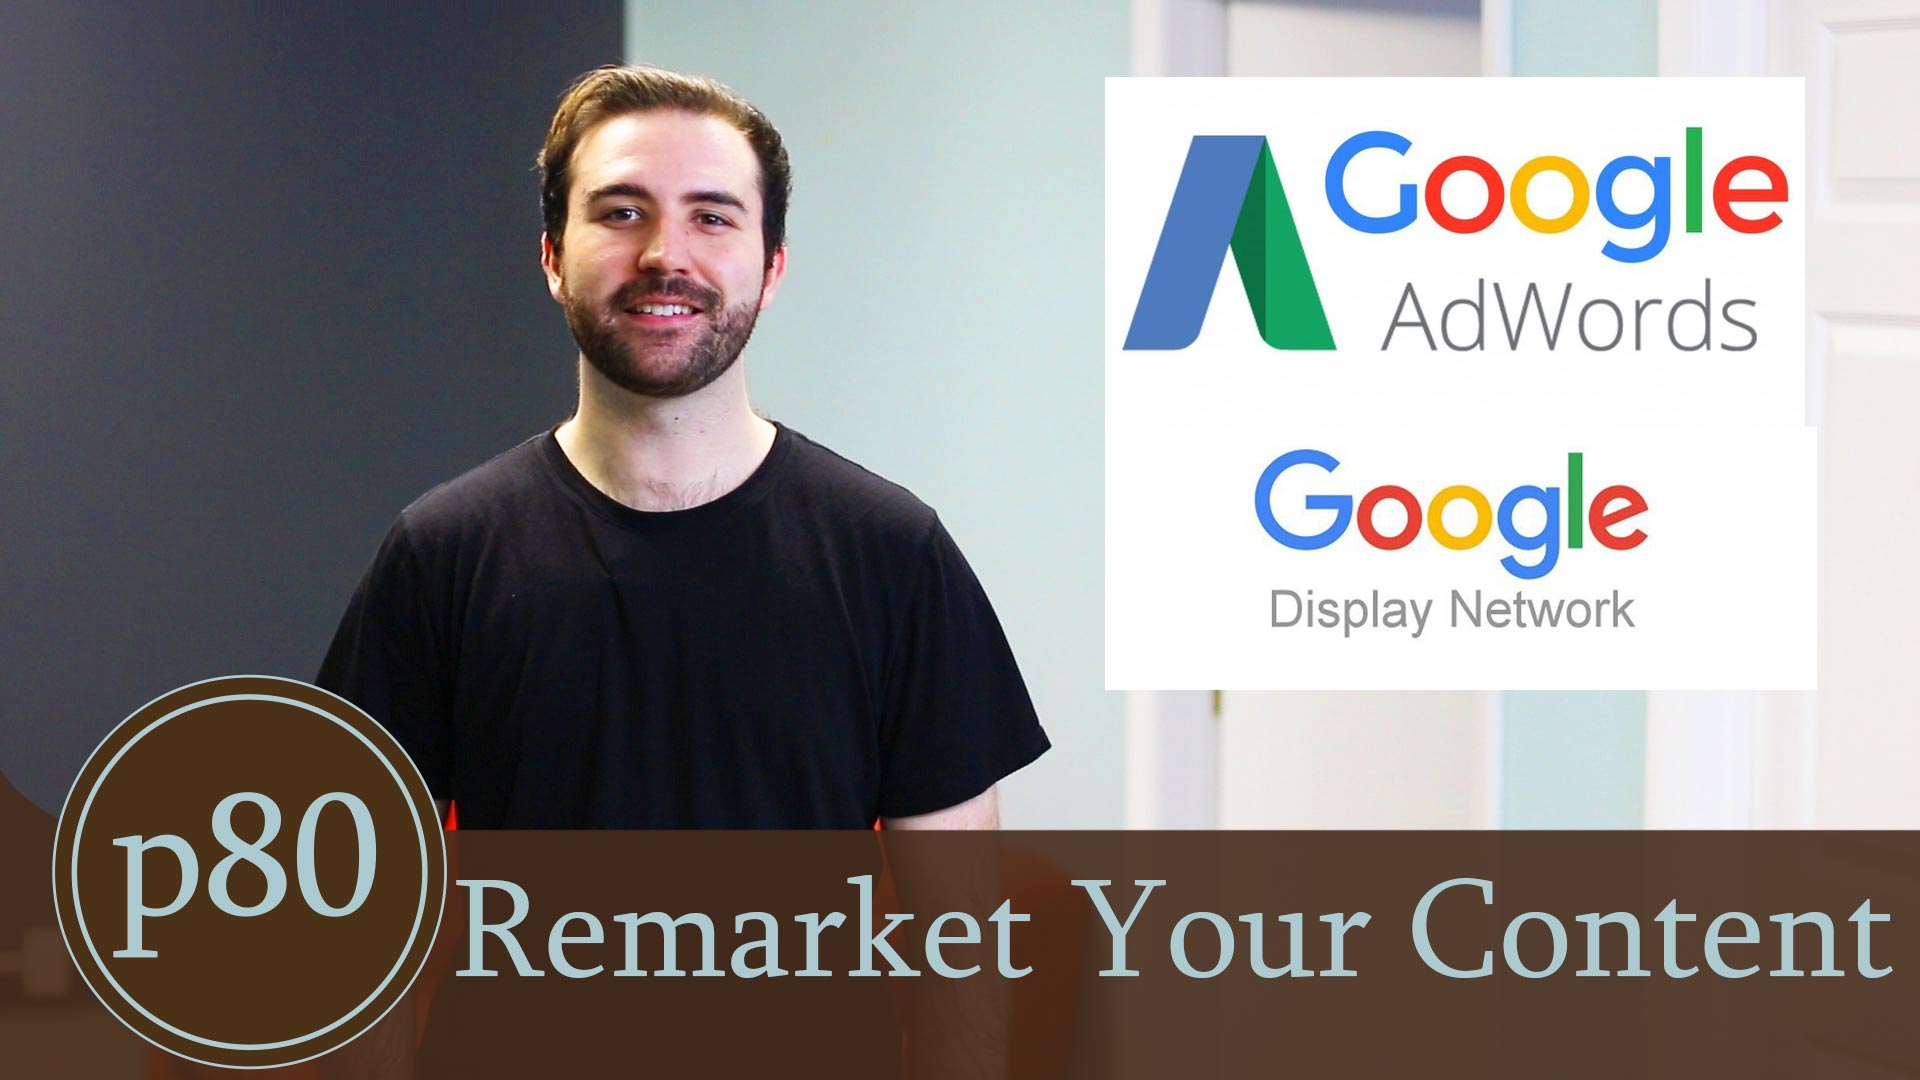 How Do You Remarket Your Content?